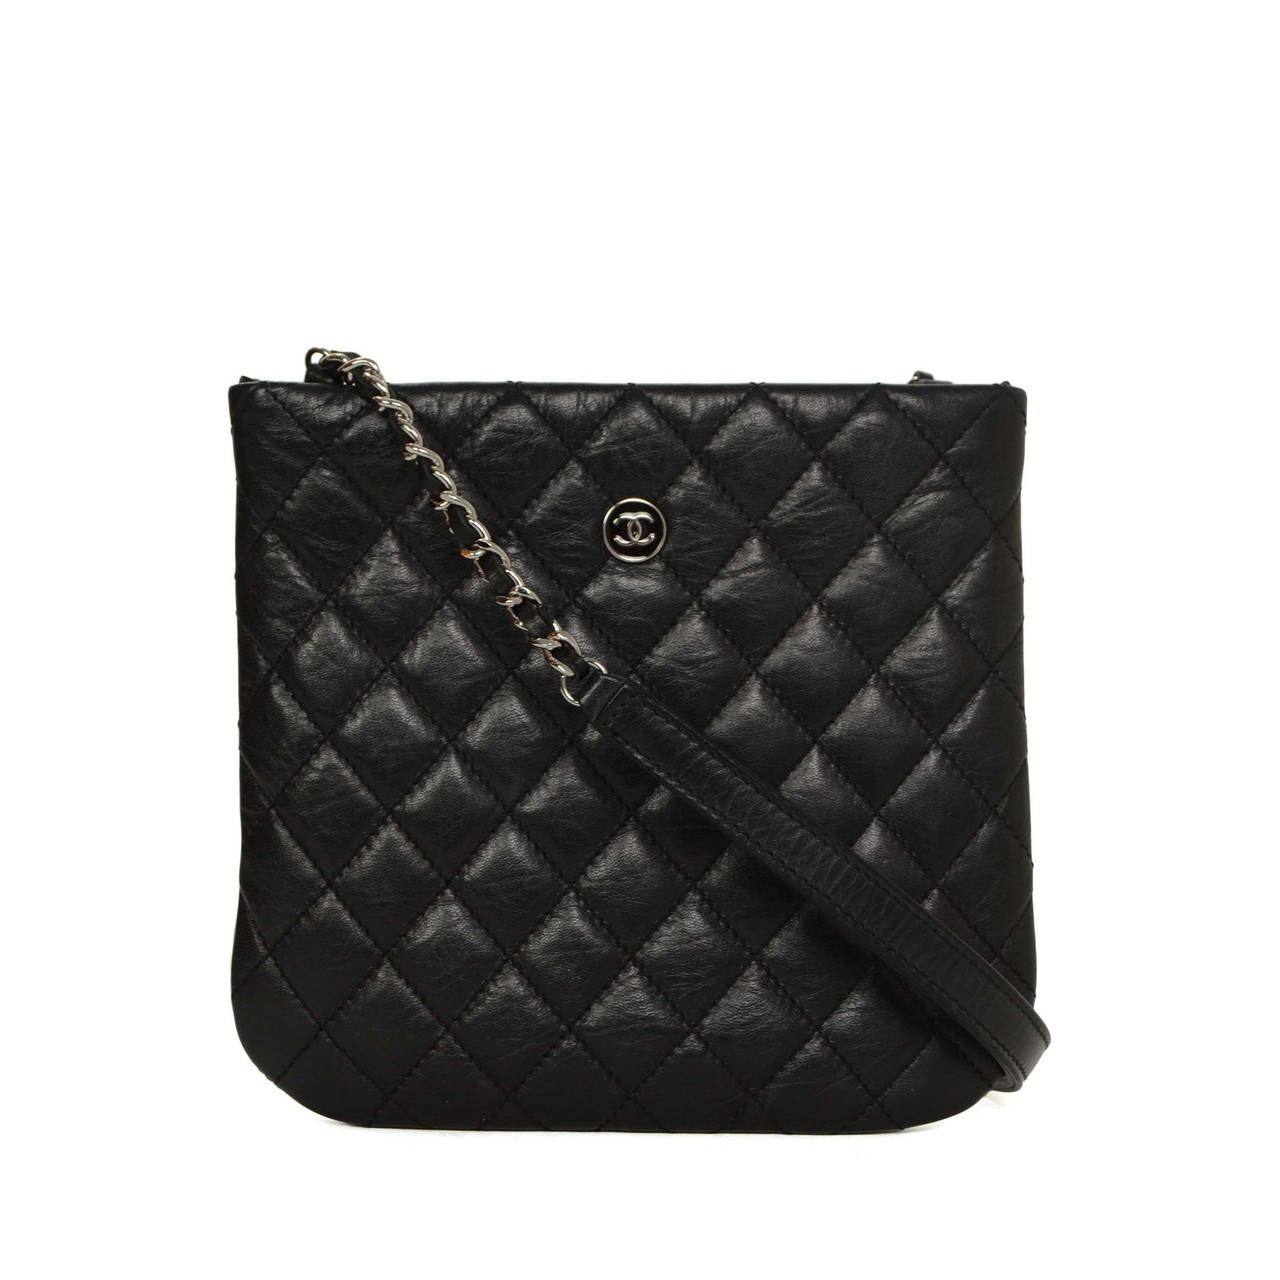 46716d49e9fc Black Chanel Crossbody Leather Bag. CHANEL Black Quilted Distressed Leather  Small Crossbody Bag SHW at 1stdibs